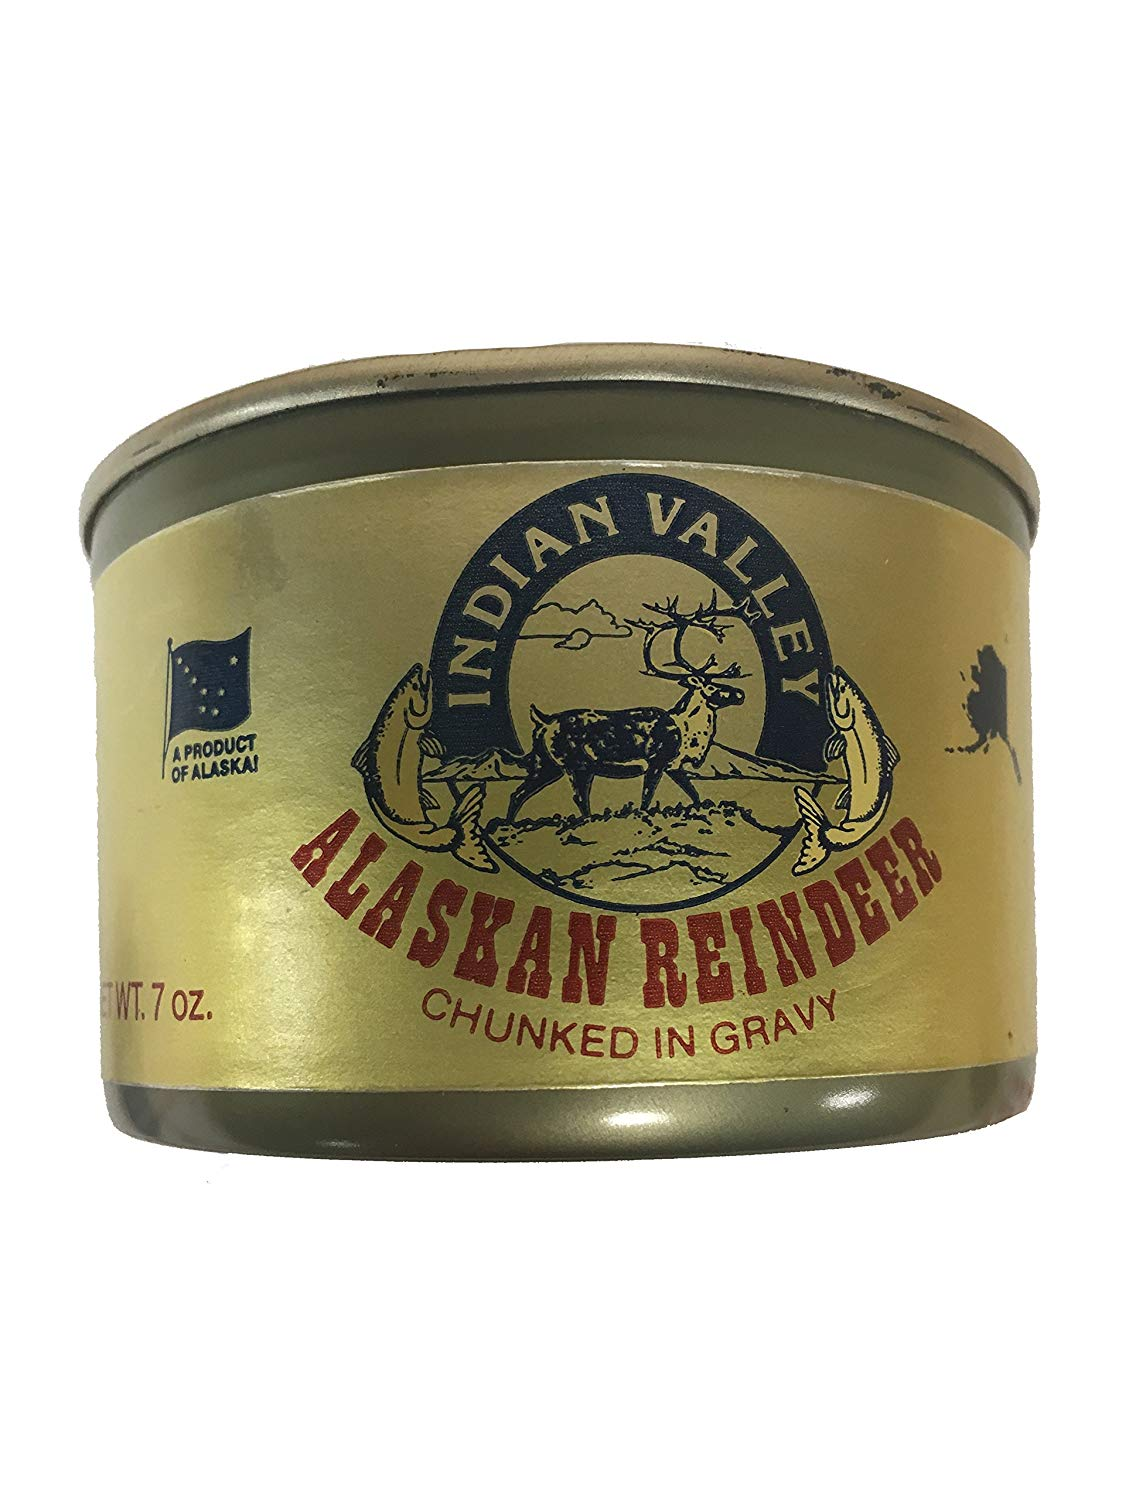 canned reindeer meat